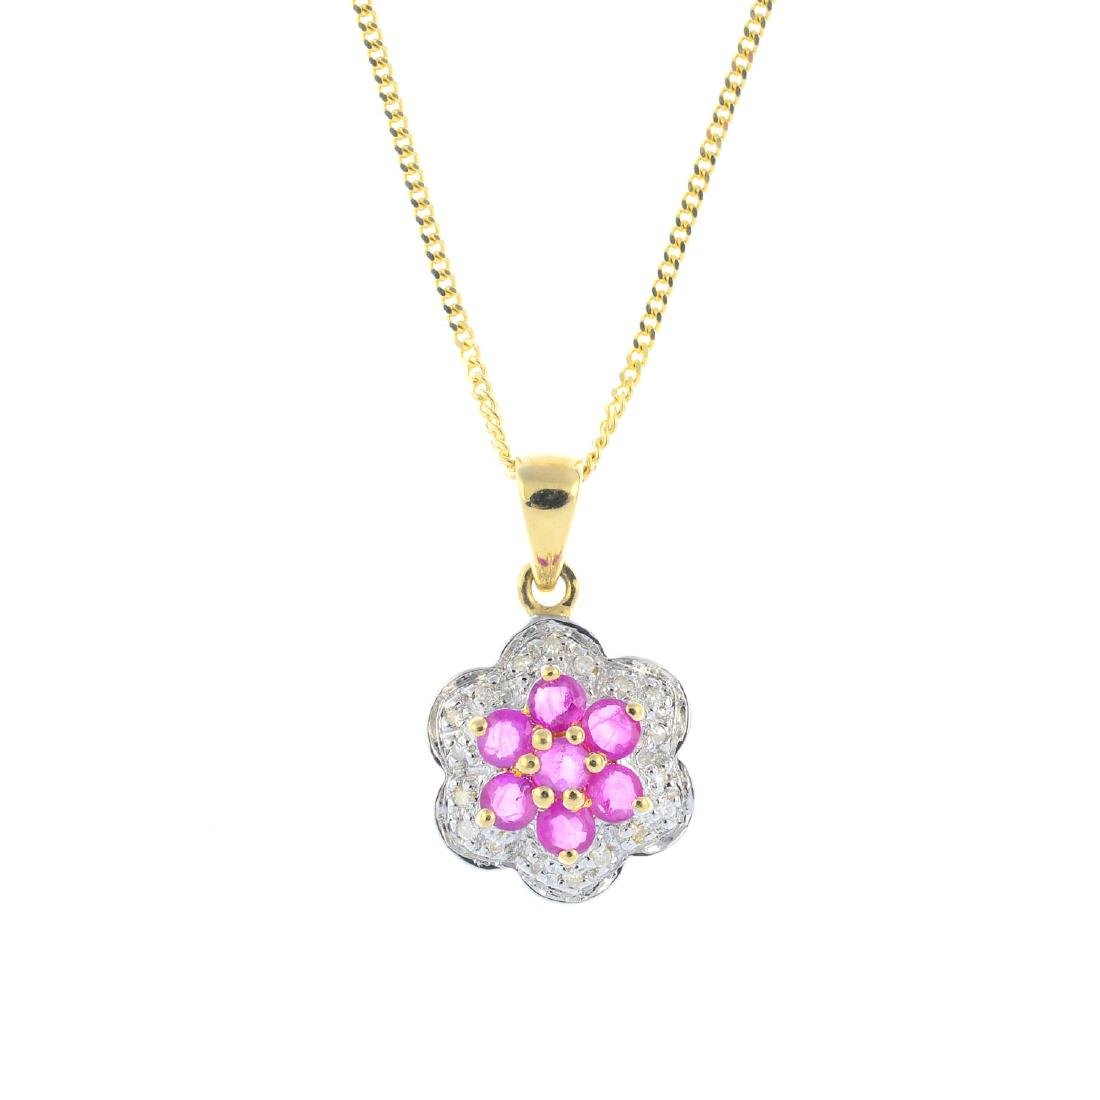 A 9ct gold ruby and diamond cluster pendant. The